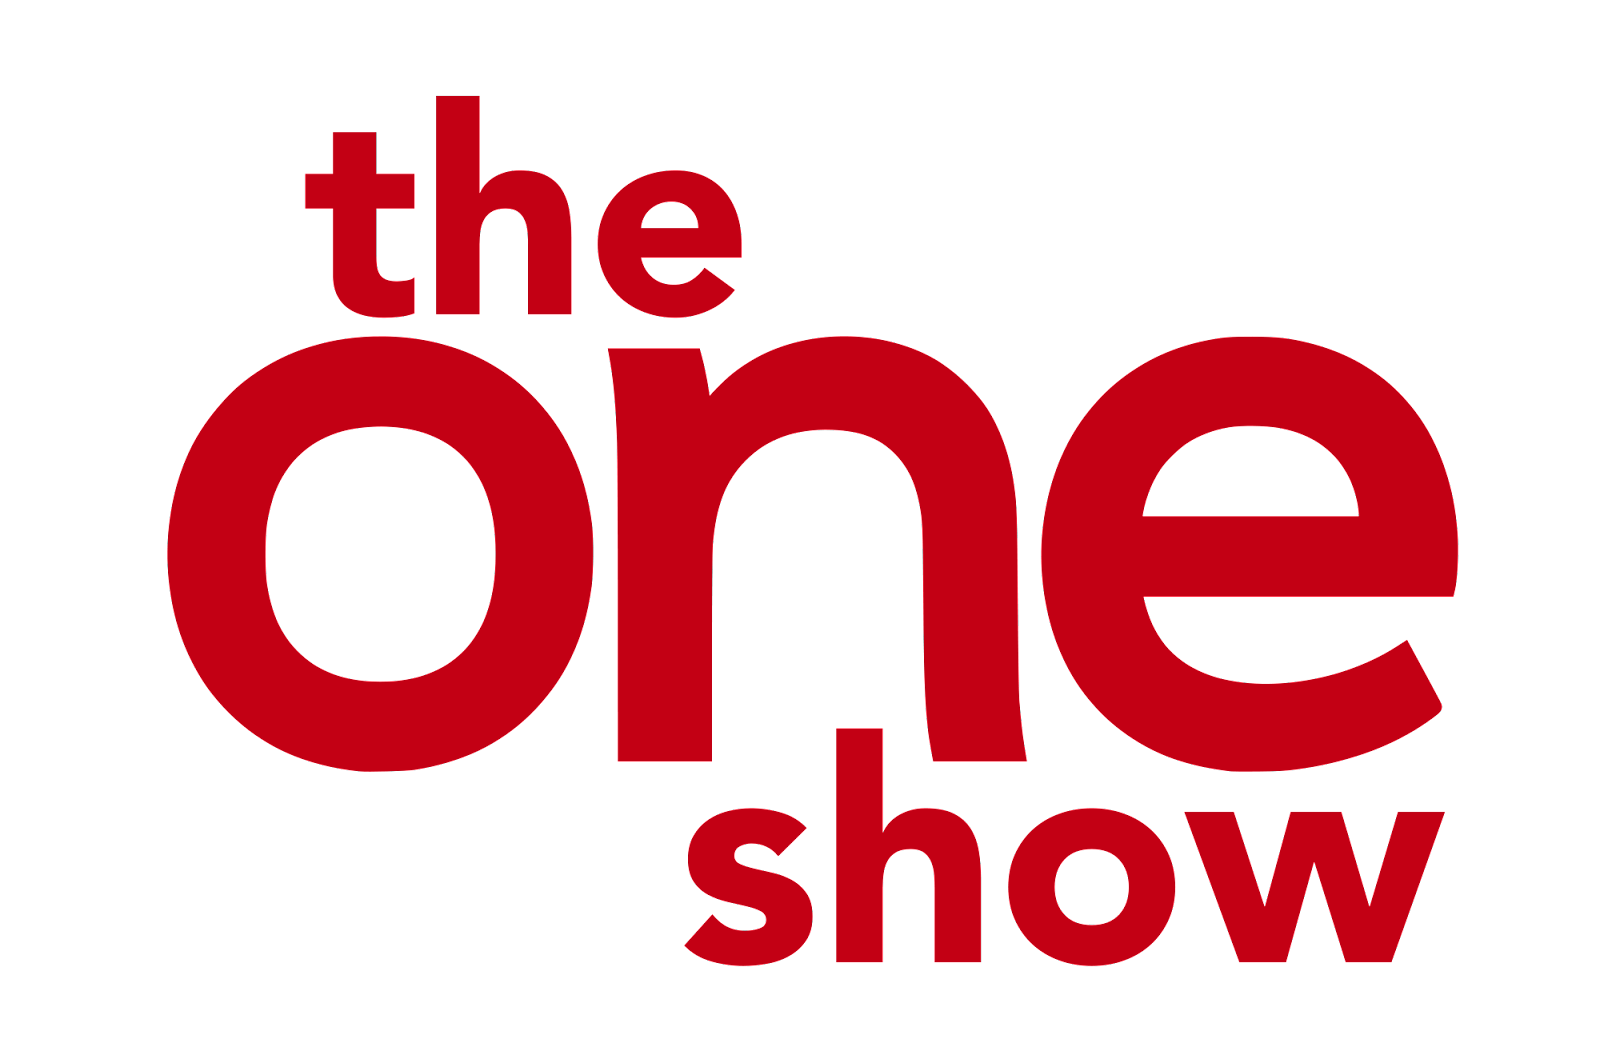 https://upload.wikimedia.org/wikipedia/commons/thumb/1/14/The_One_Show_-_2007.svg/2000px-The_One_Show_-_2007.svg.png